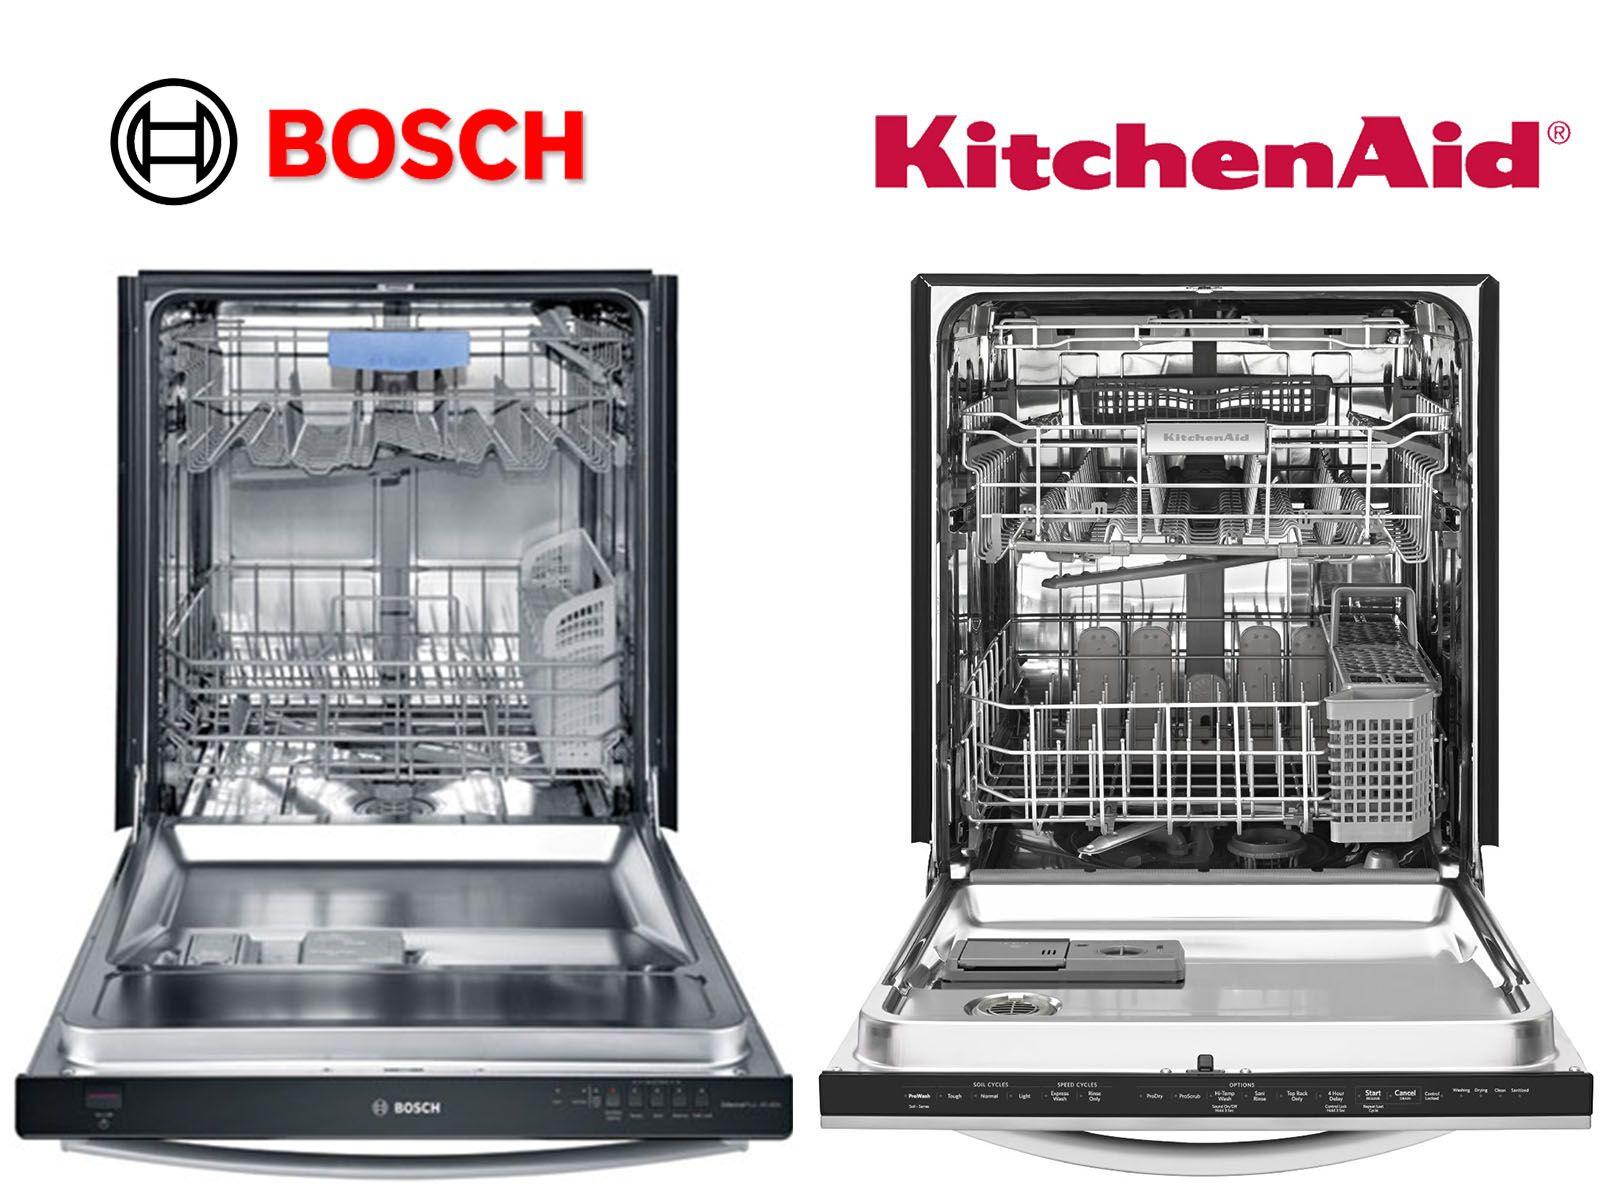 When We Compare Kitchenaid Dishwashers To Bosch Dishwashers It Is Like Comparing A Fuji Apple T Kitchenaid Dishwasher Appliance Repair Service Appliance Repair